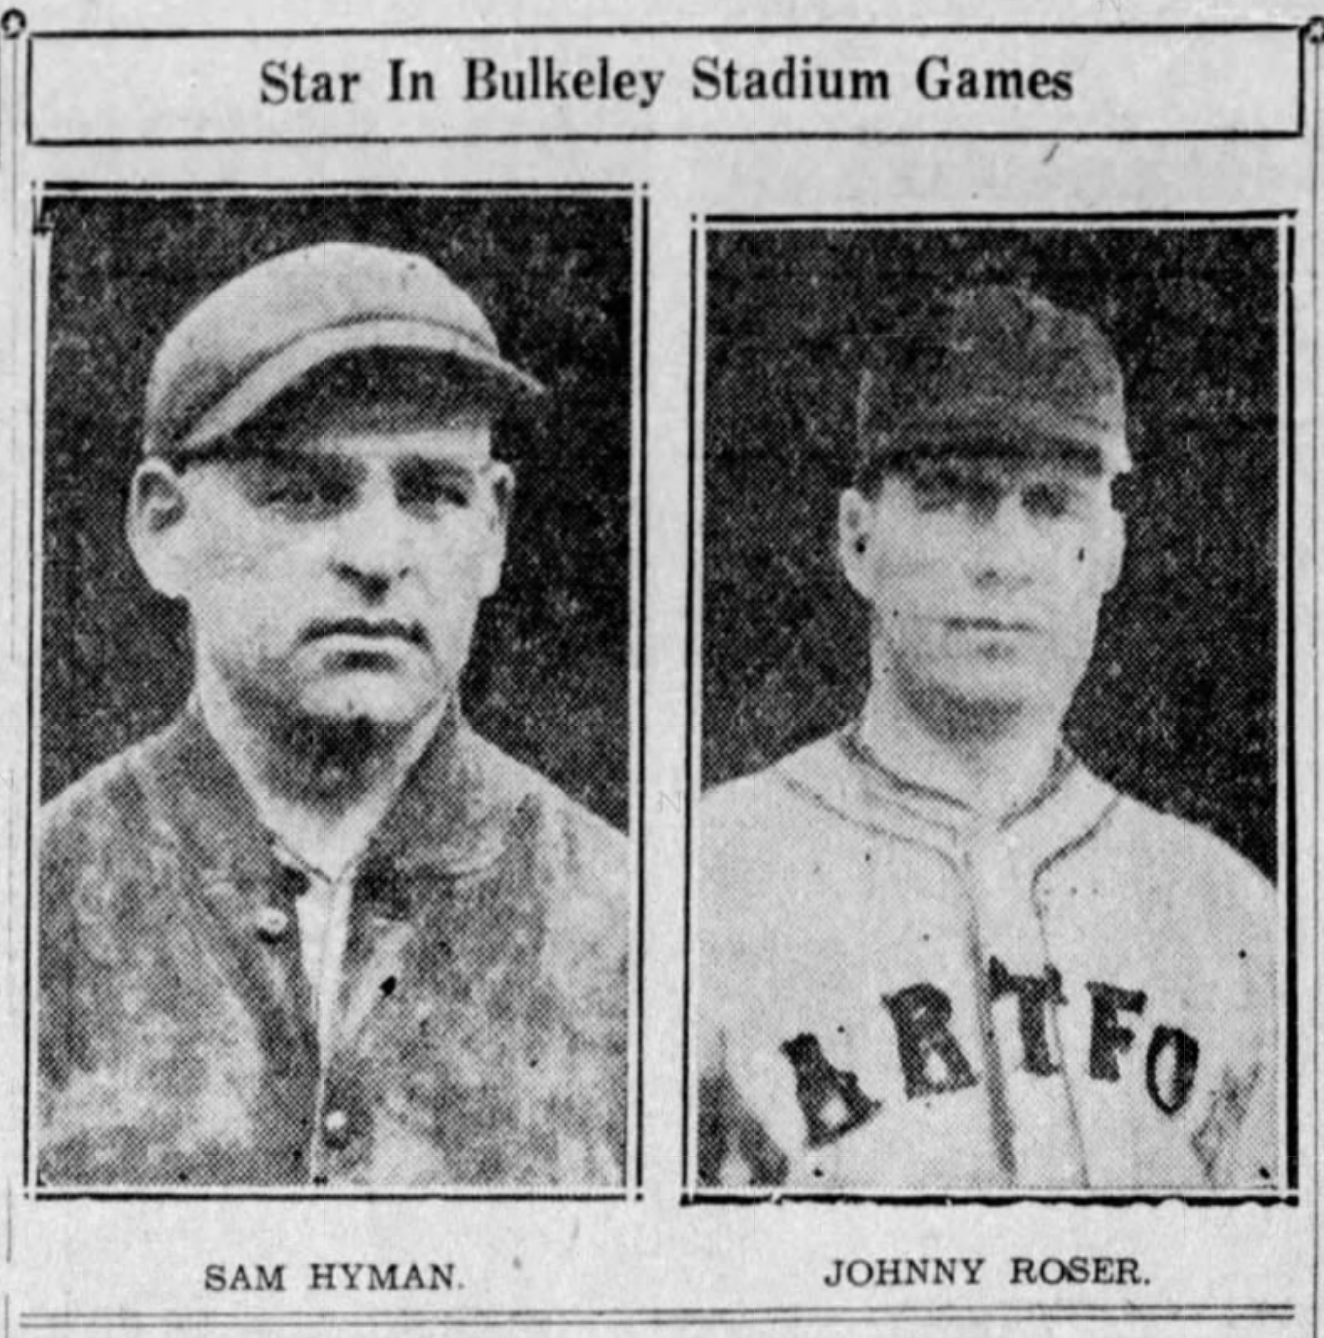 Sam Hyman and Johnny Roser, Savitt Gems,1935.